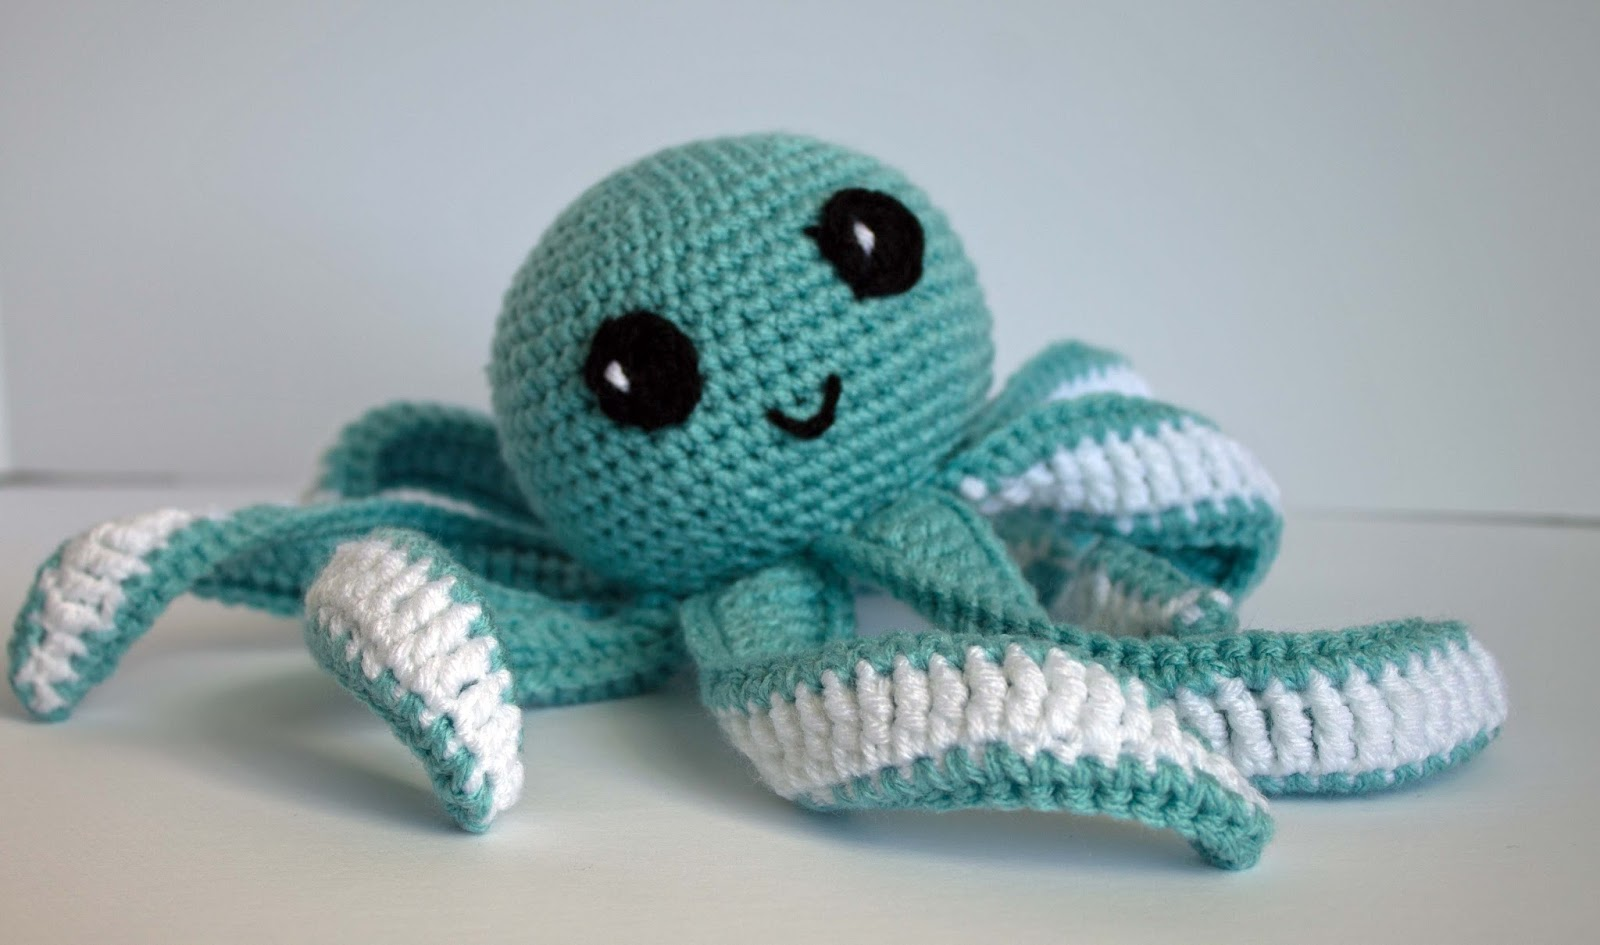 Free Pattern Crochet Octopus : Amigurumi Octopus Baby Toy Free Pattern Part 2 - The ...